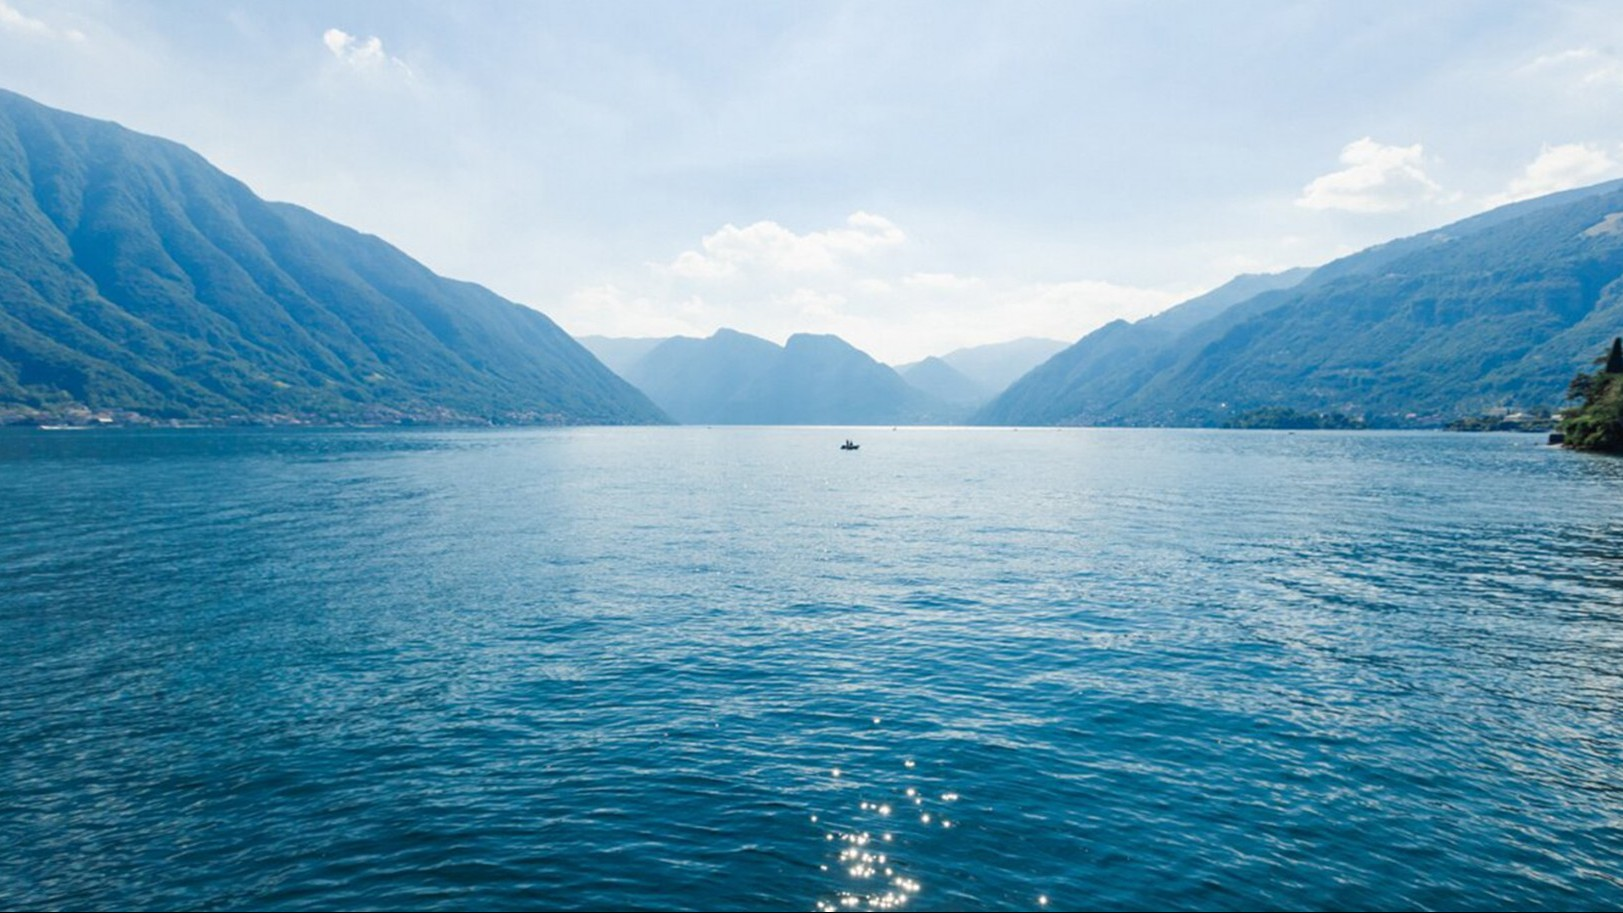 Wedding planning on Italian lakes